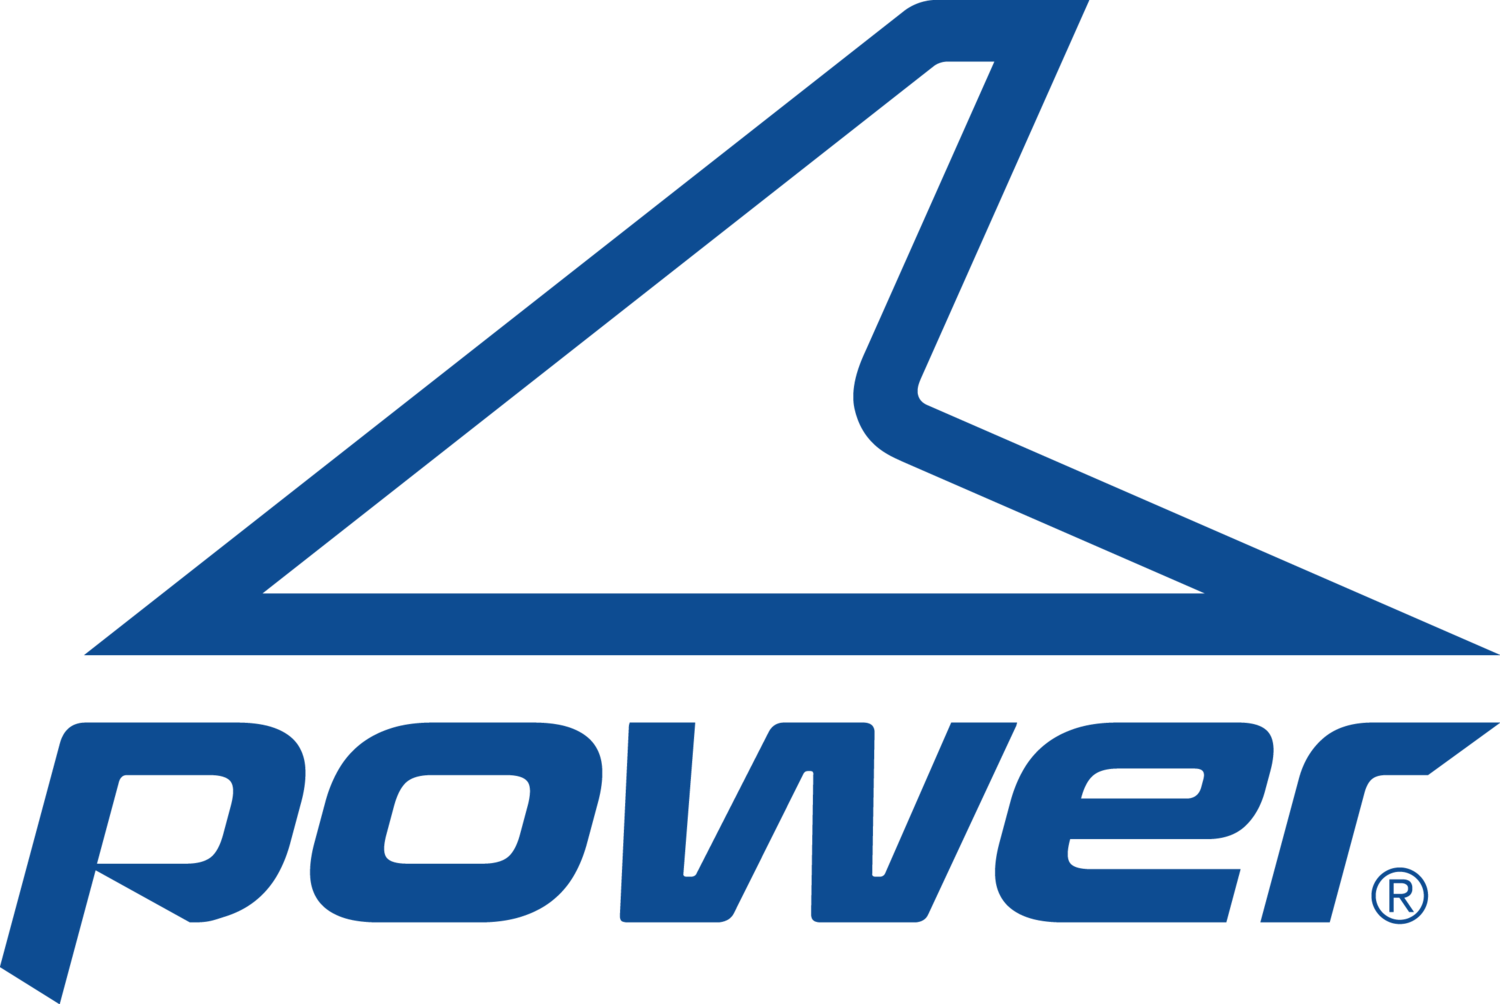 Power logo png. Footwear